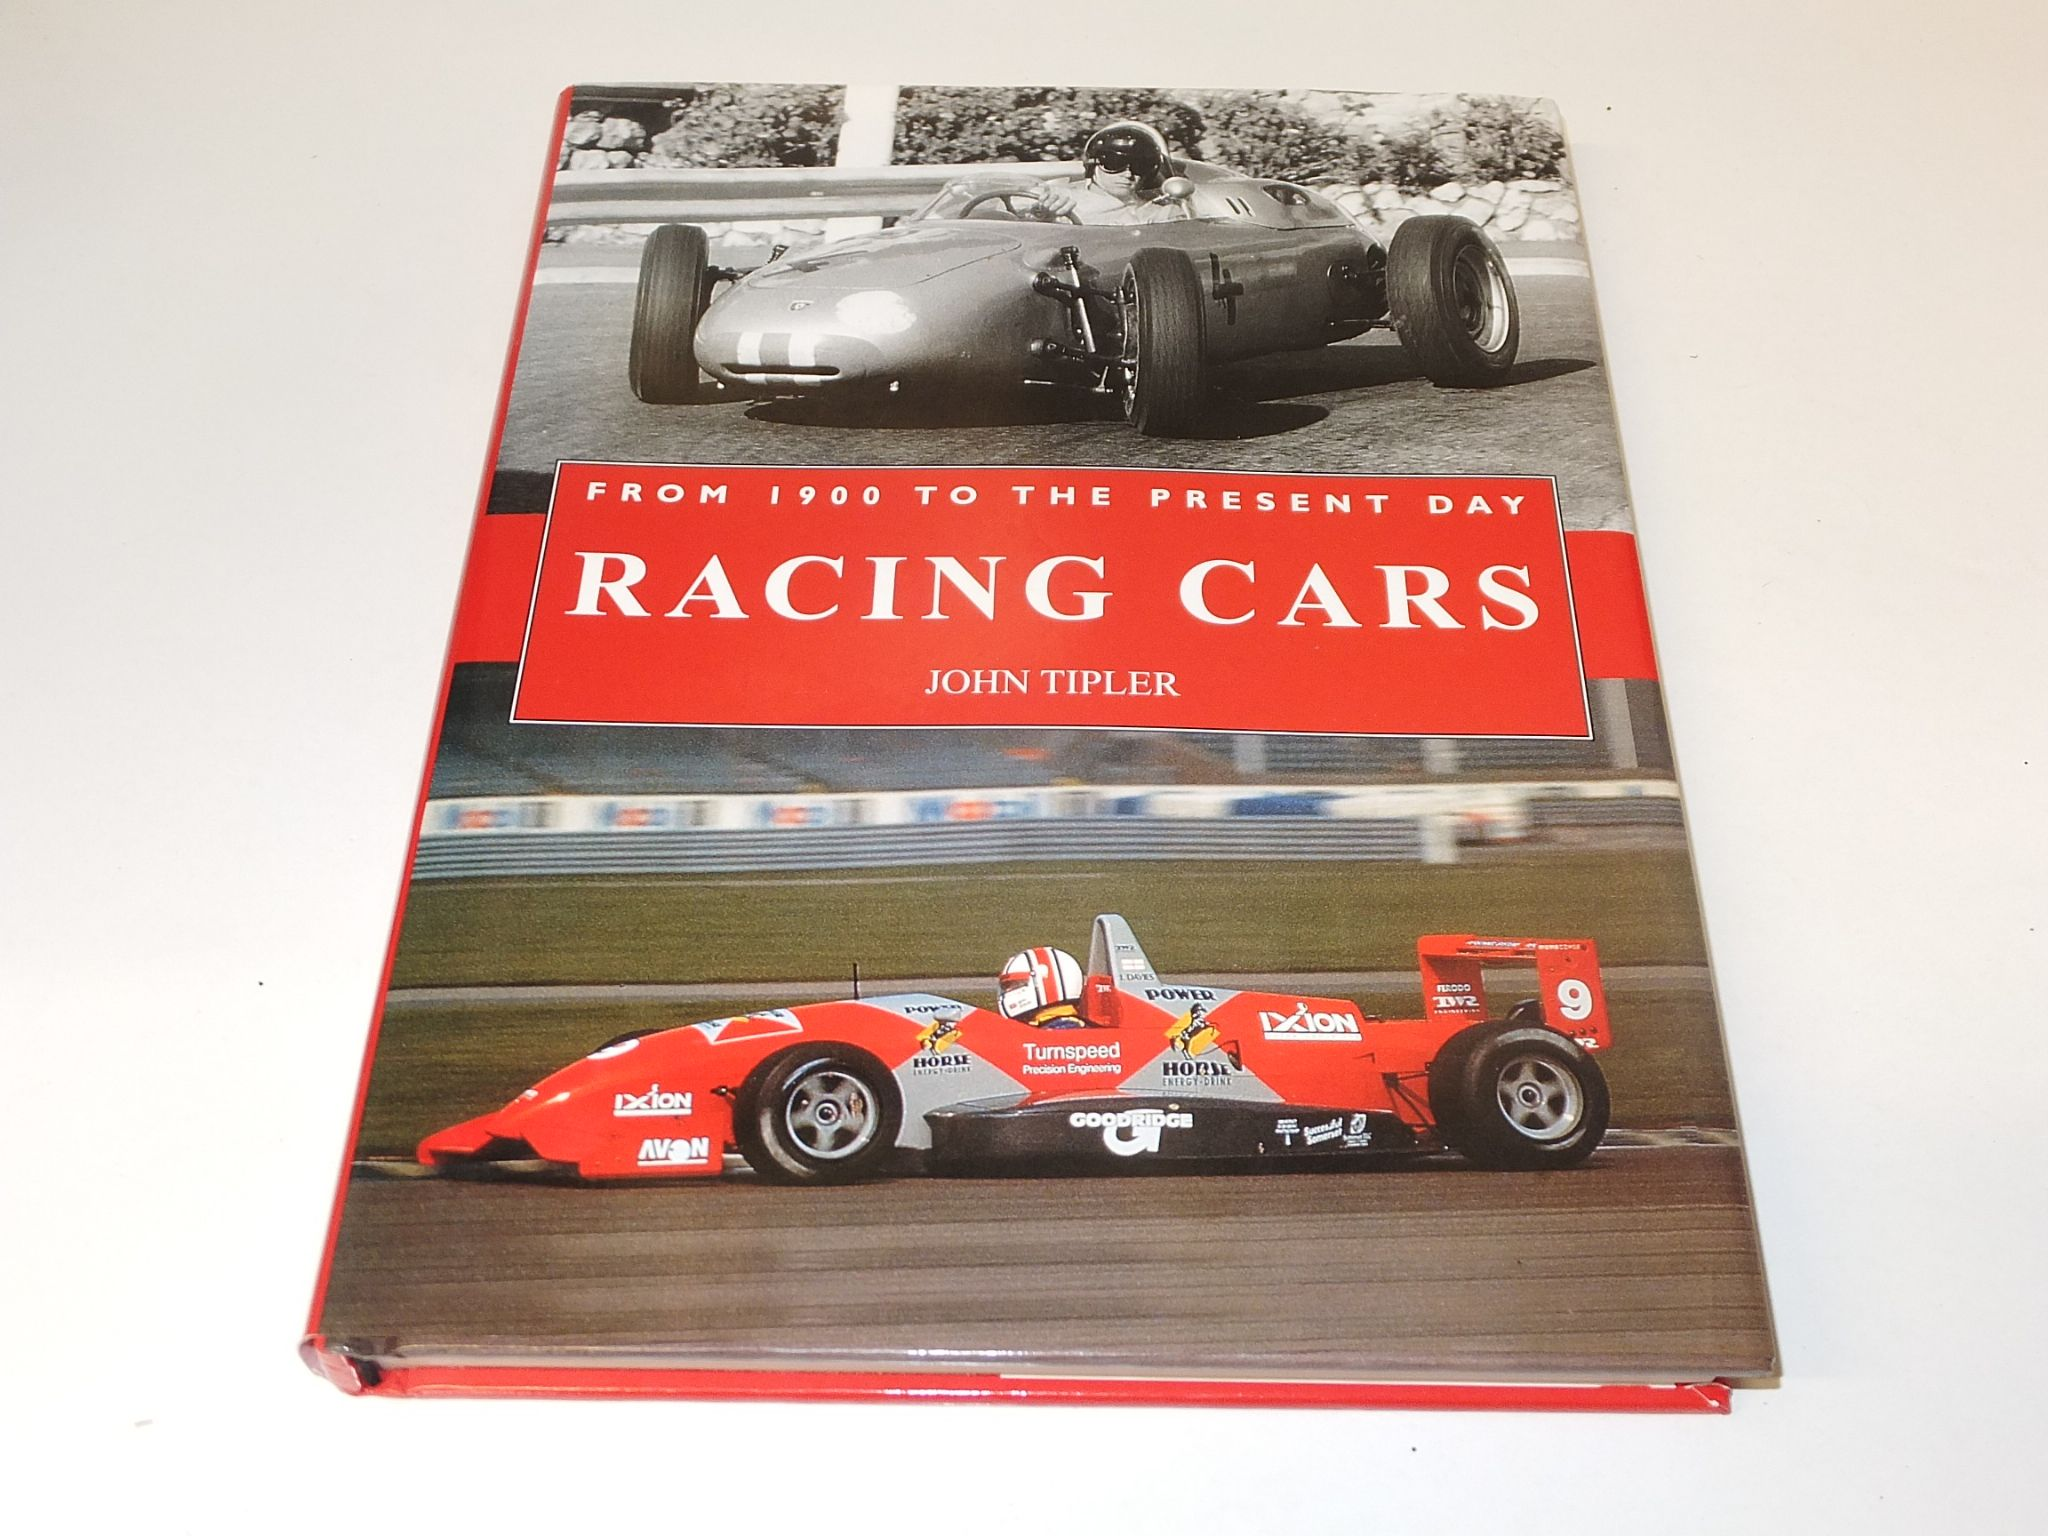 RACING CARS From 1900 To The Present Day (Tipler 2005)